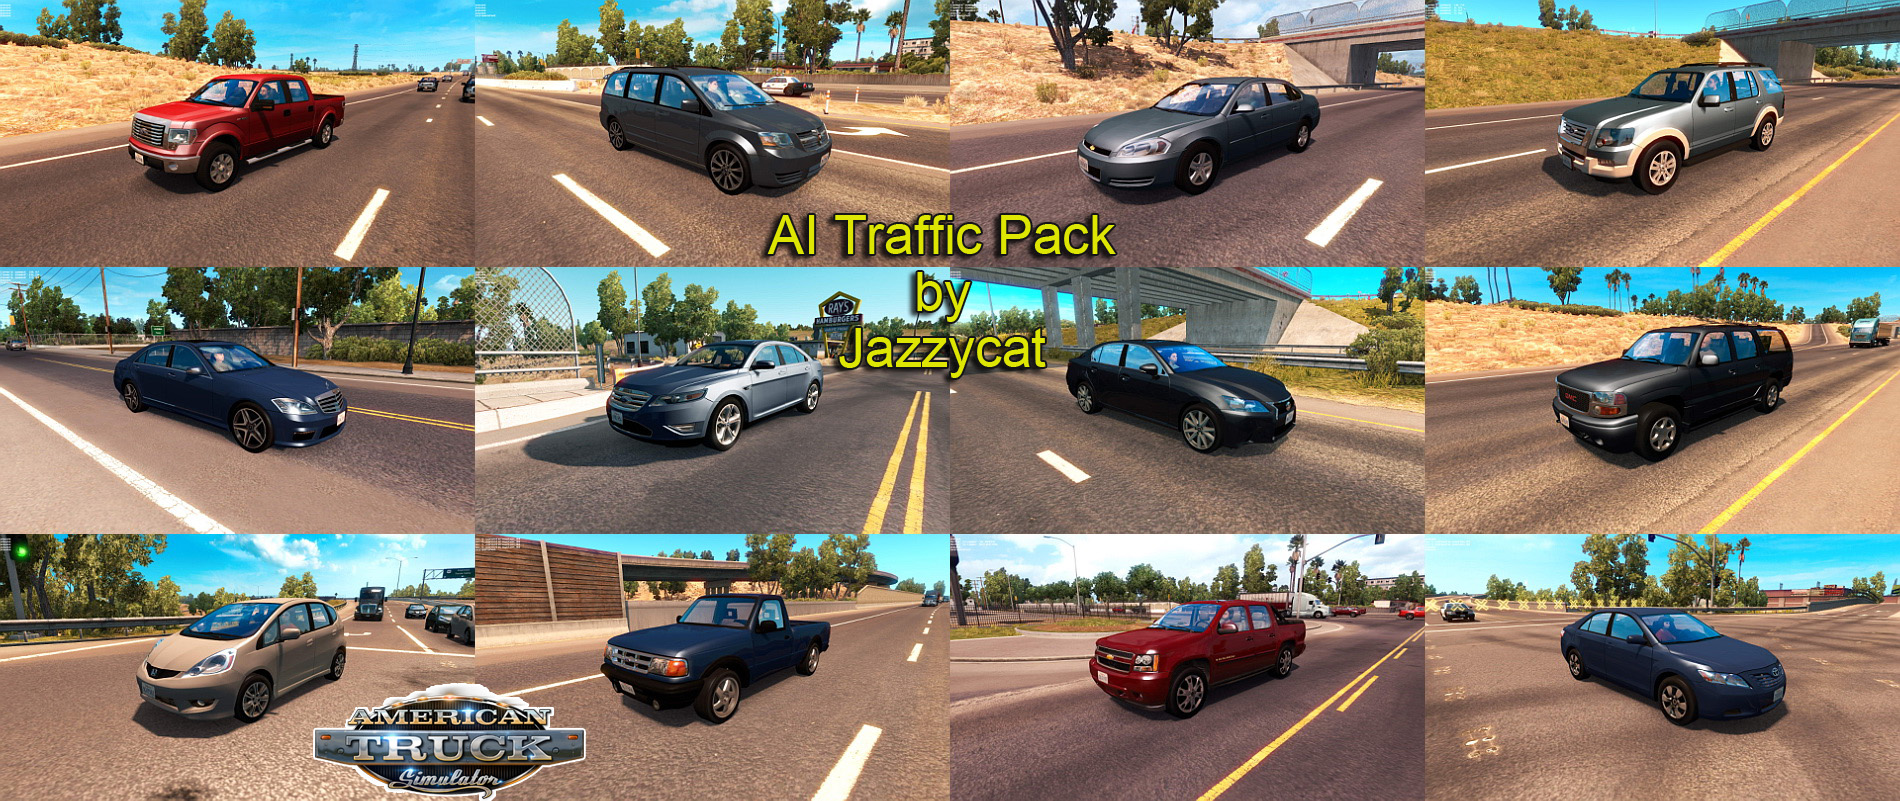 01_ai_traffic_pack_by_Jazzycat_v1.2.jpg